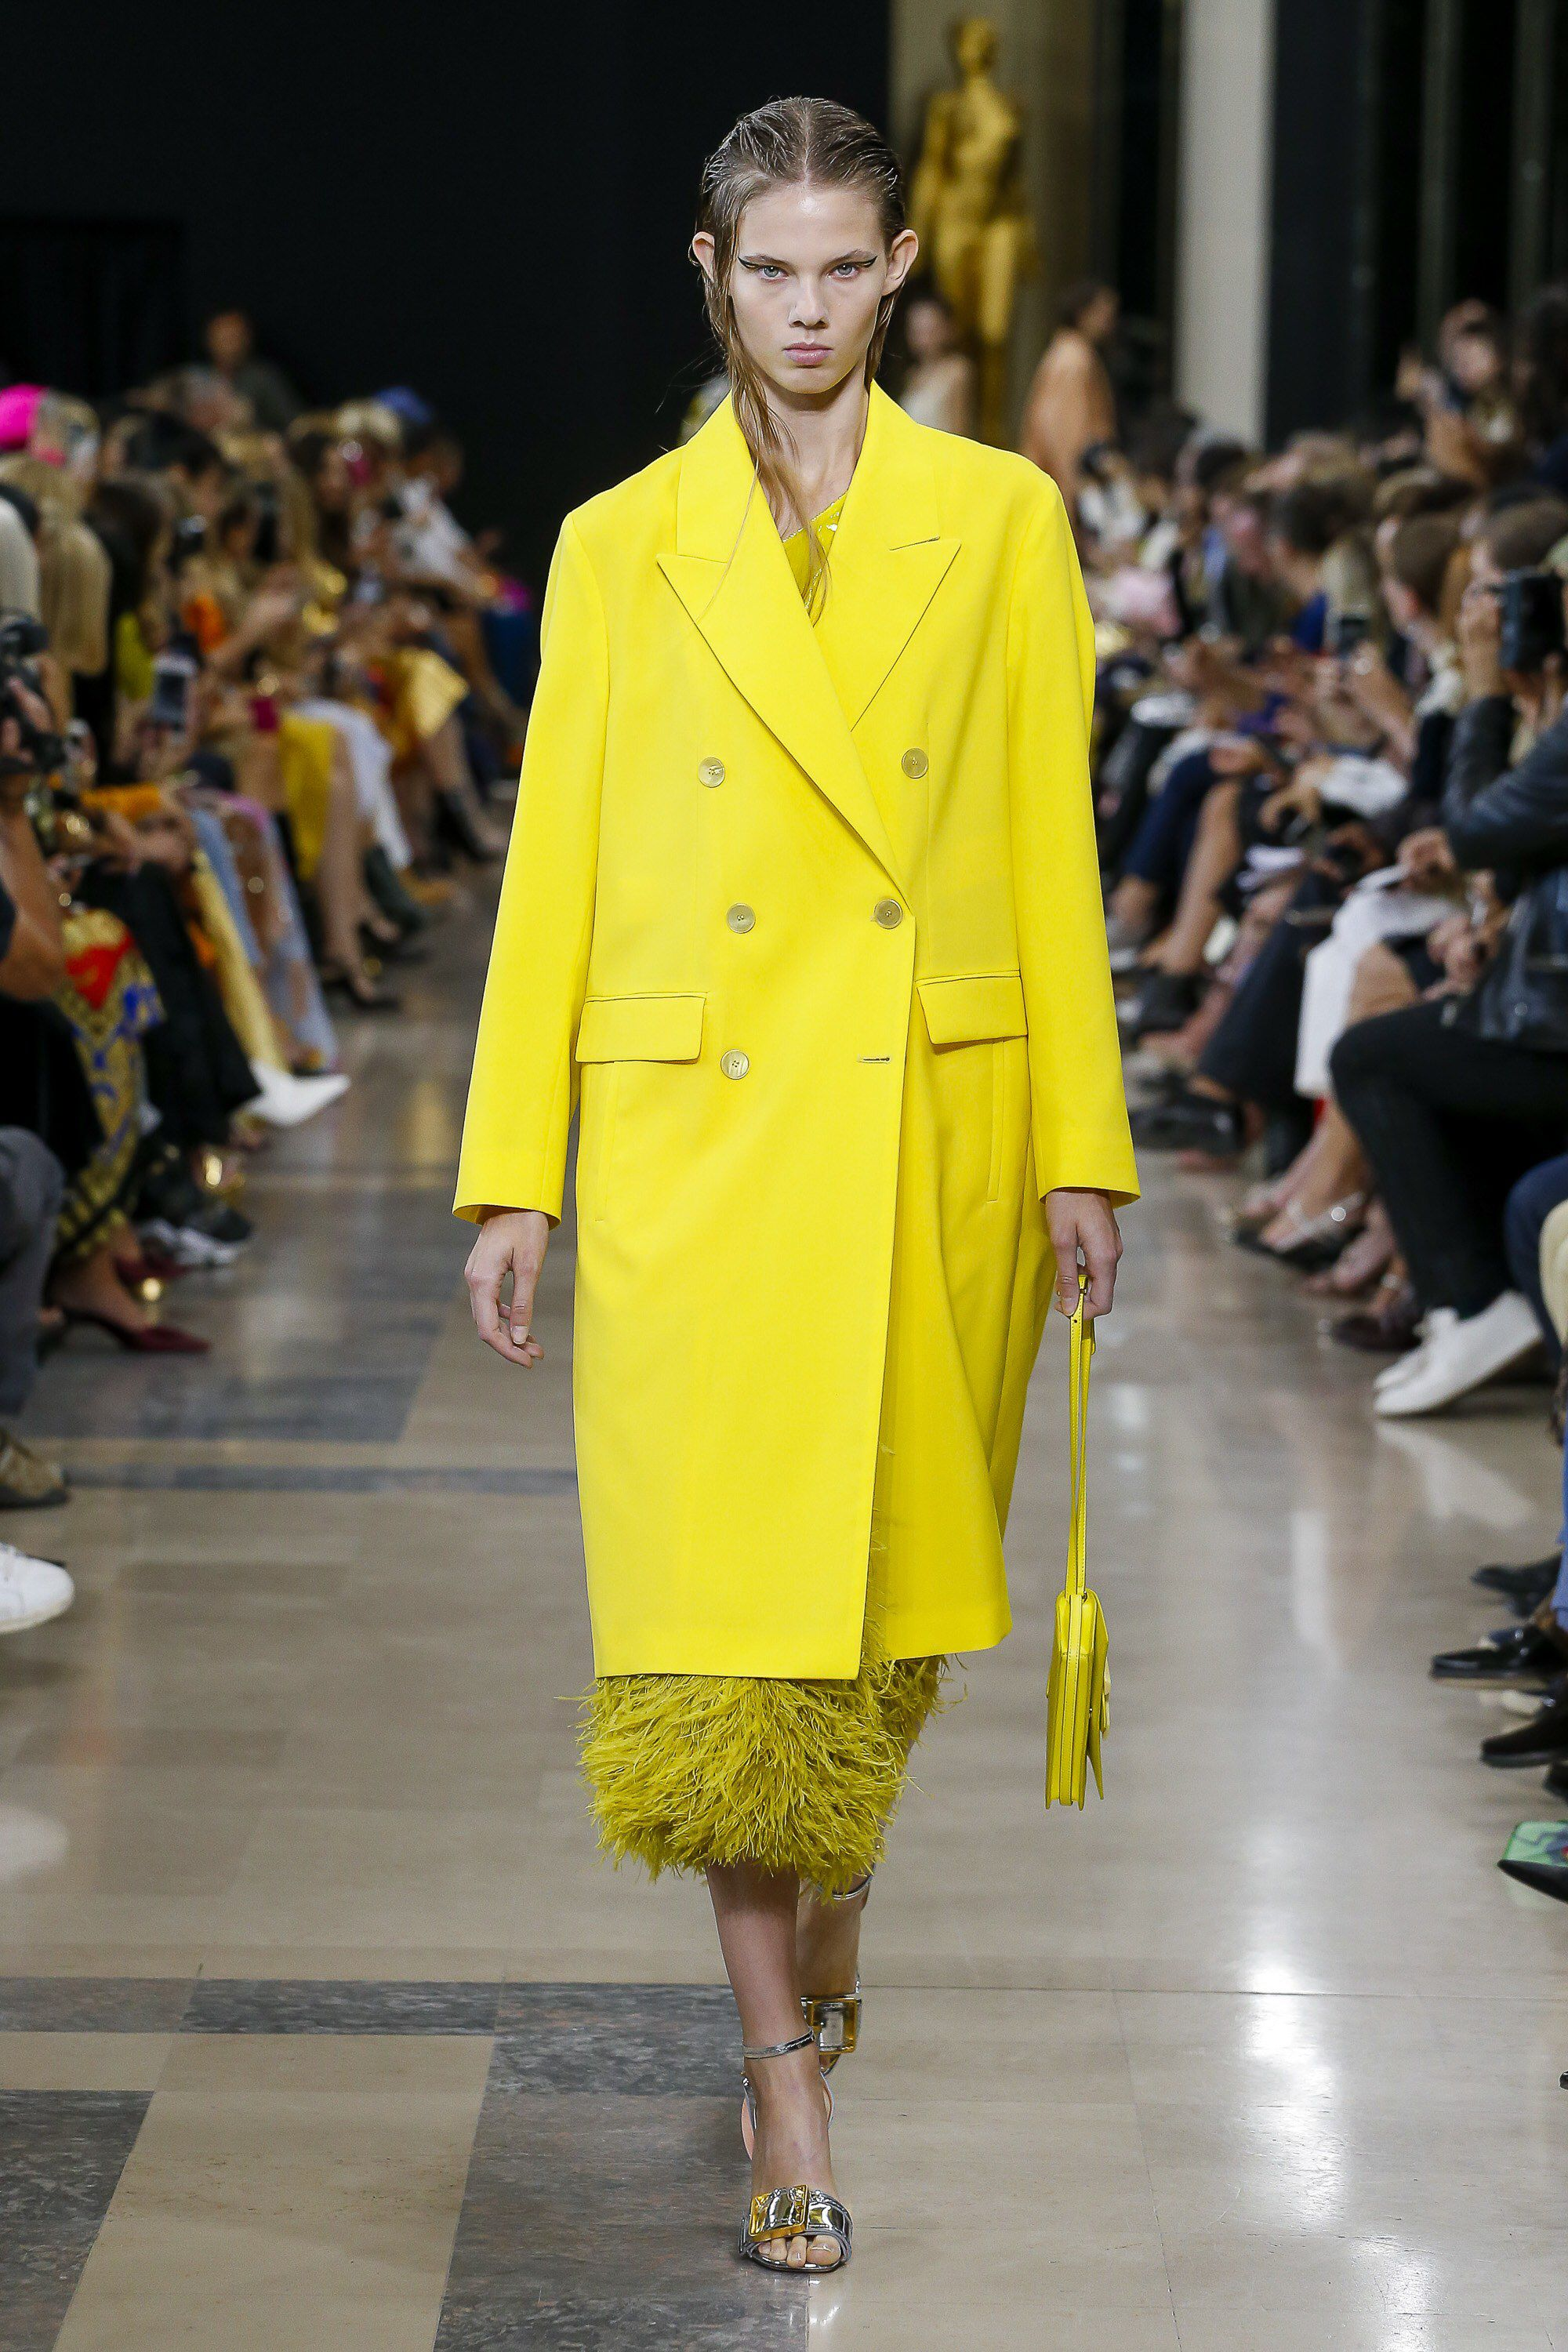 Rochas SpringSummer 2019 Collection Accents The Importance of Color